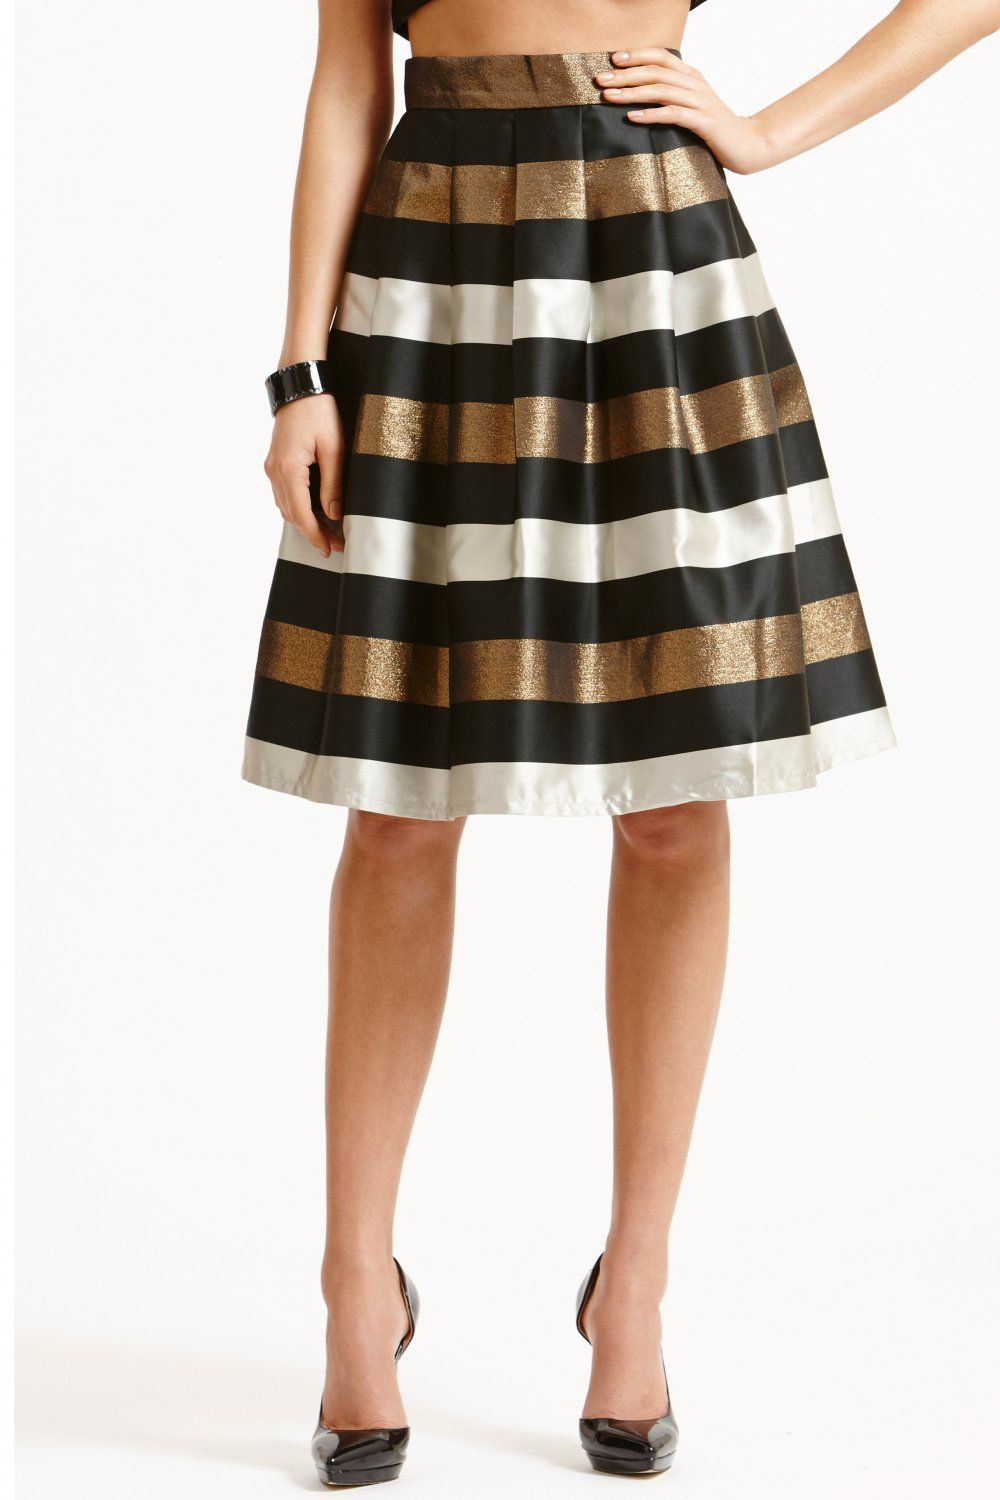 A Line Black And White Skirt - Dress Ala